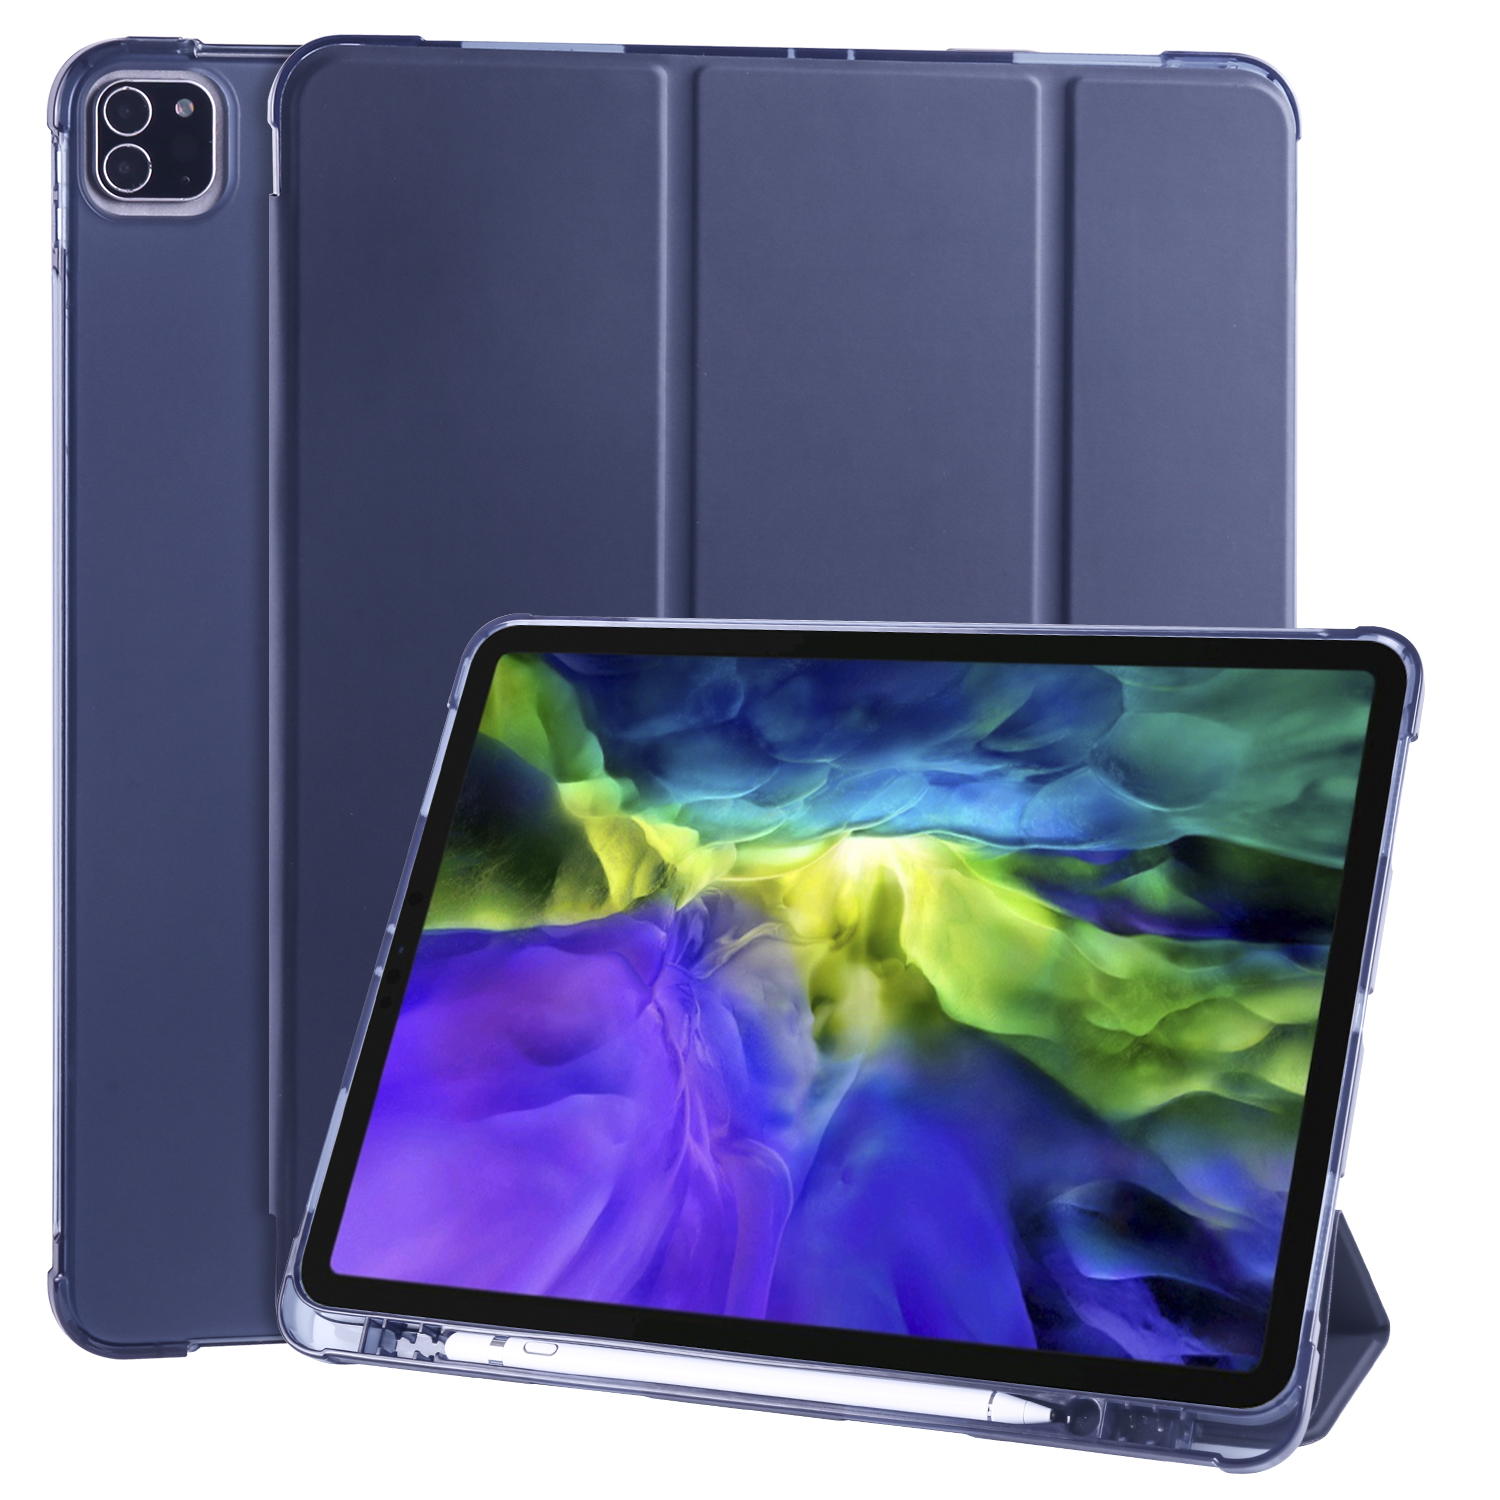 for with 4th Pen iPad 3rd Soft Slot Case 12.9 2020 Smart Generation Pro Shockproof 2018